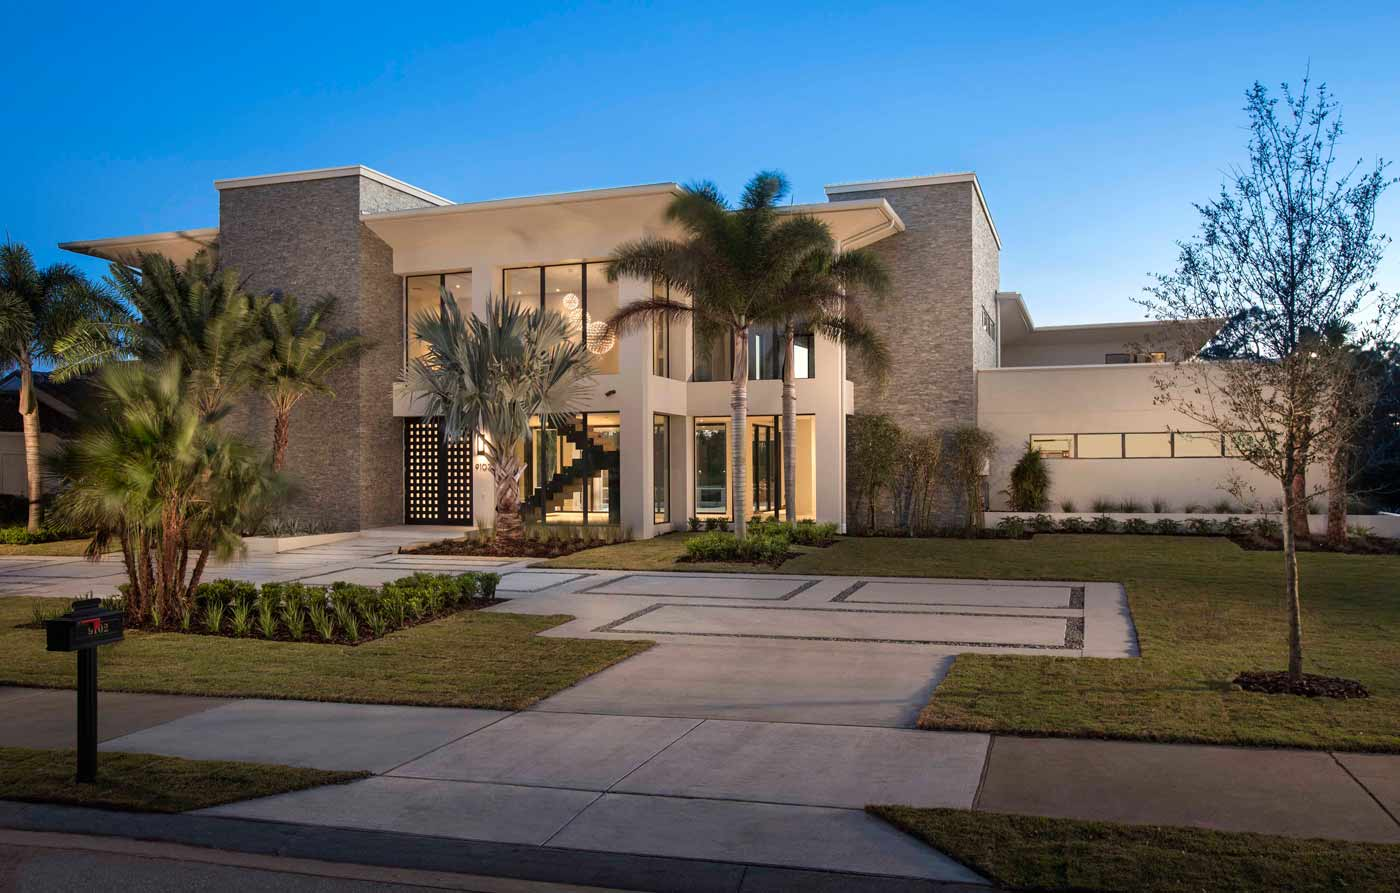 Red8's façade blends warm textures and mature landscaping to accent the home's modern design.